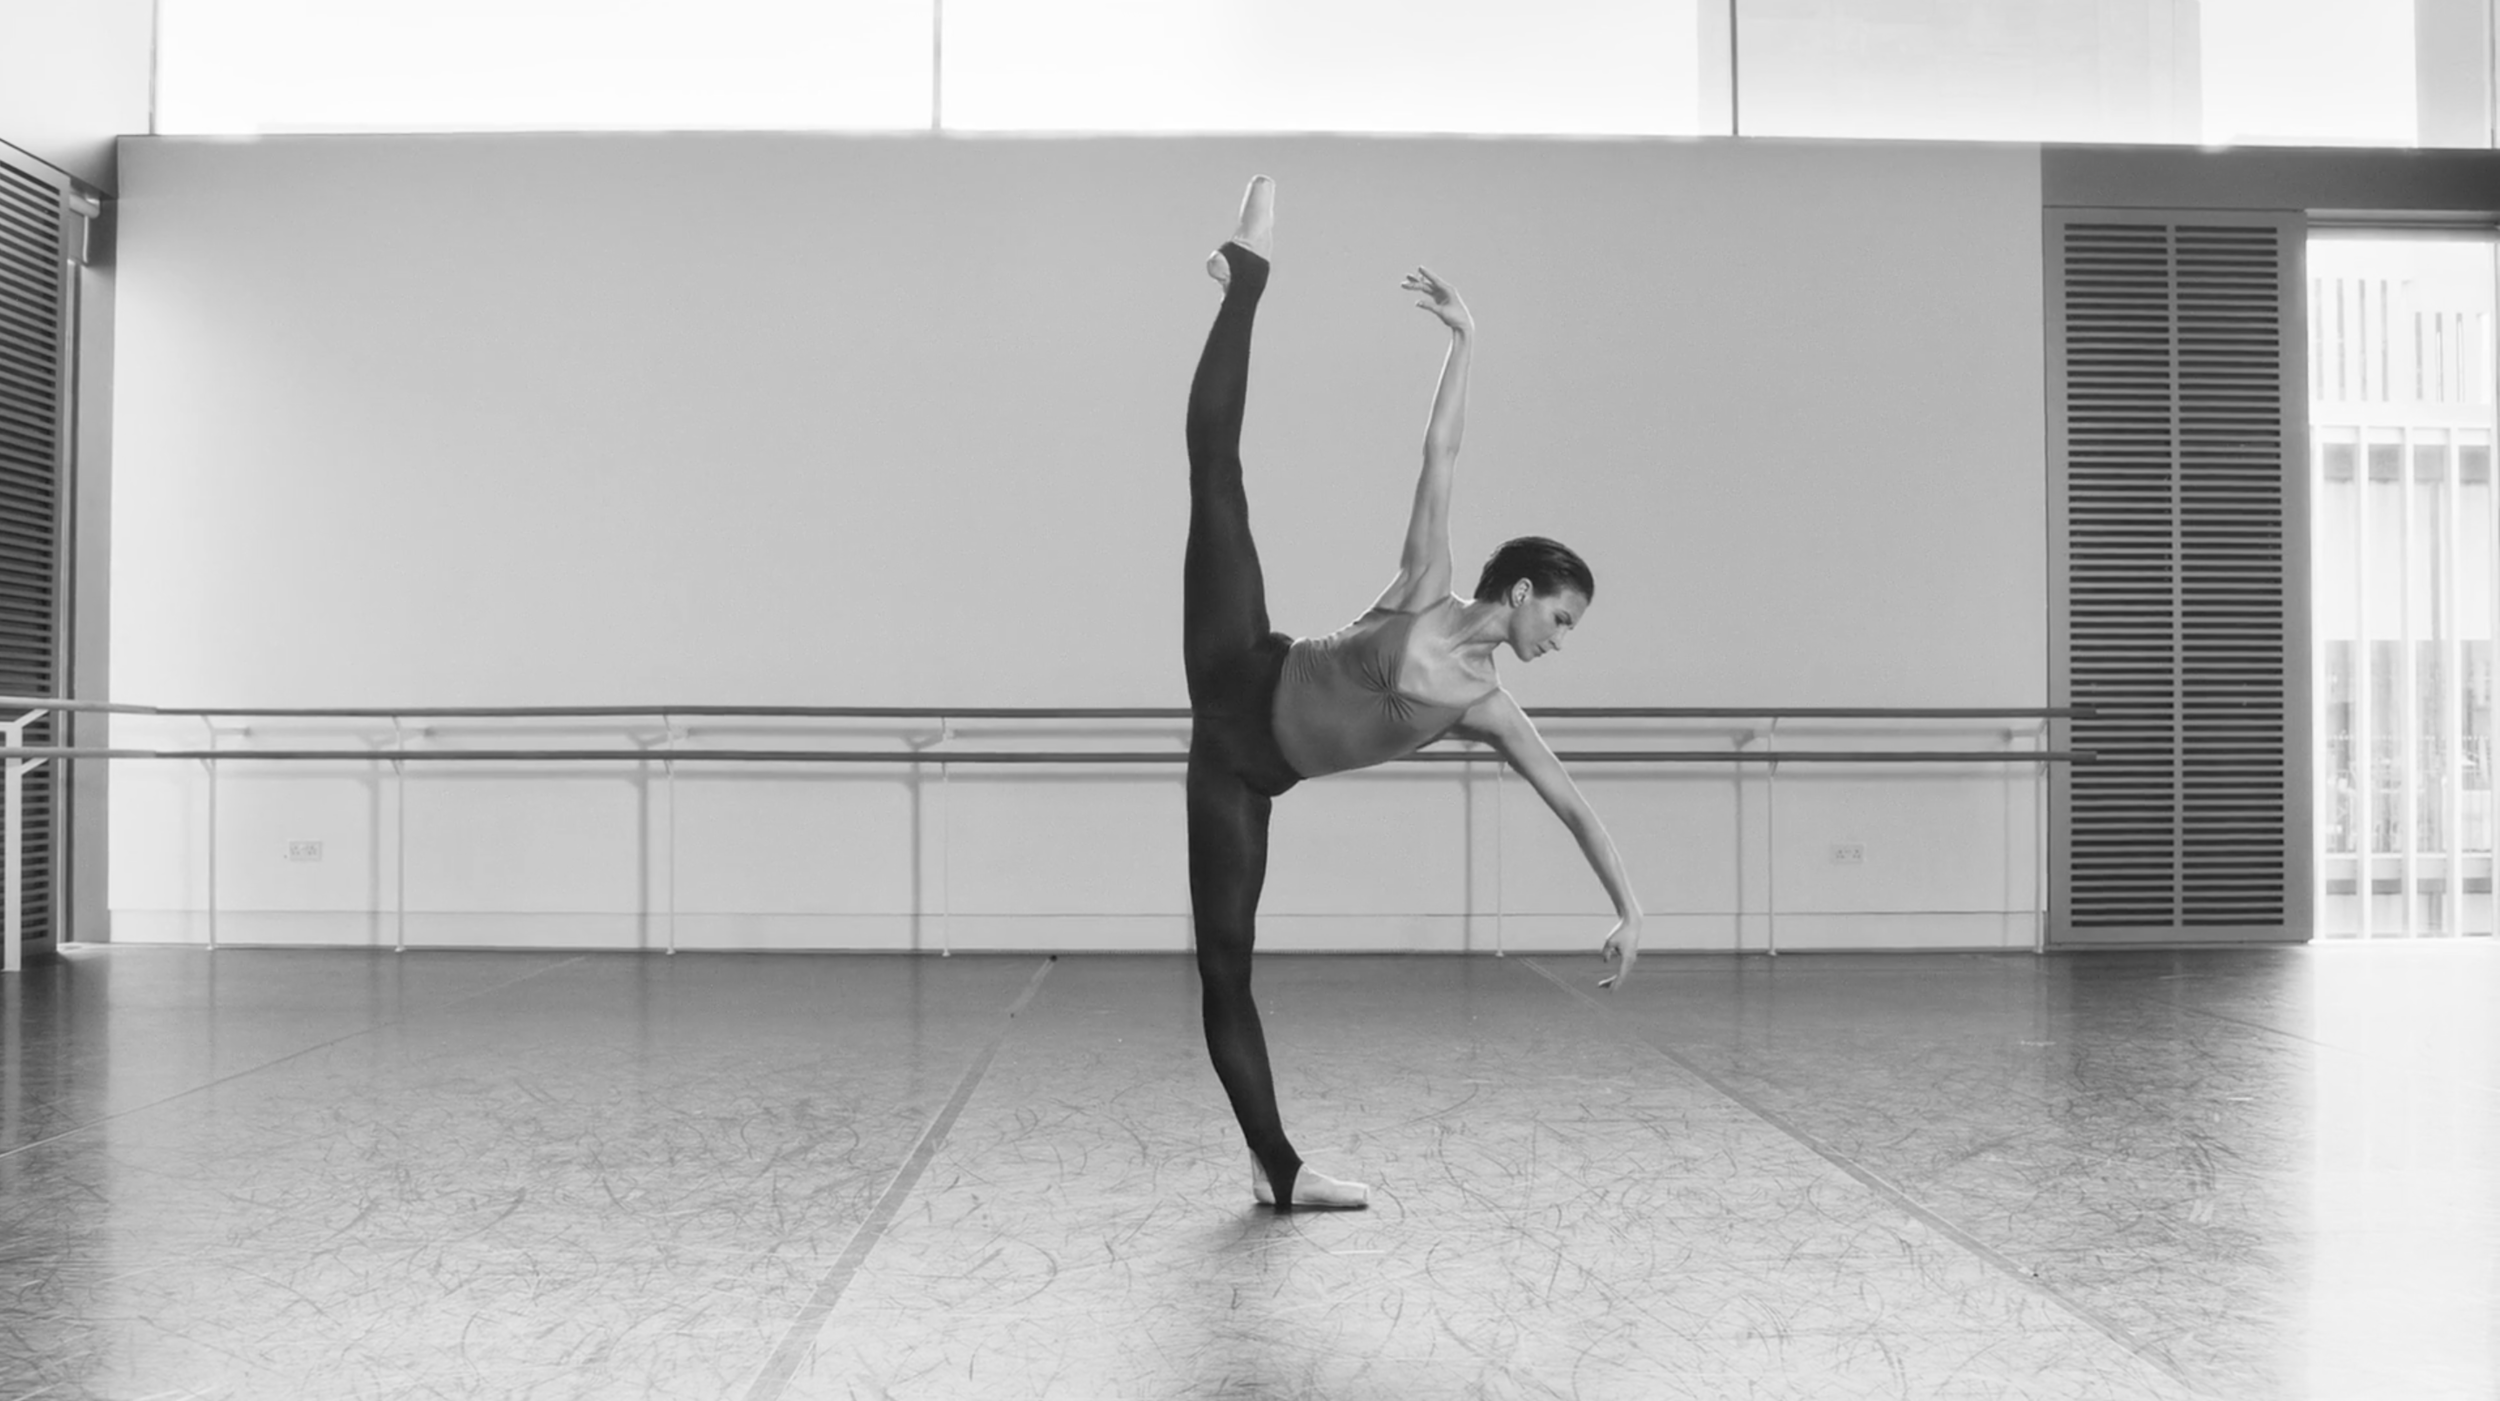 Lauren Cuthbertson, principal with The Royal Ballet and featured artist in the film  Reborn , will take part in a Q&A after the show. She will be joined by the Director of  Reborn , Andrew Margetson.